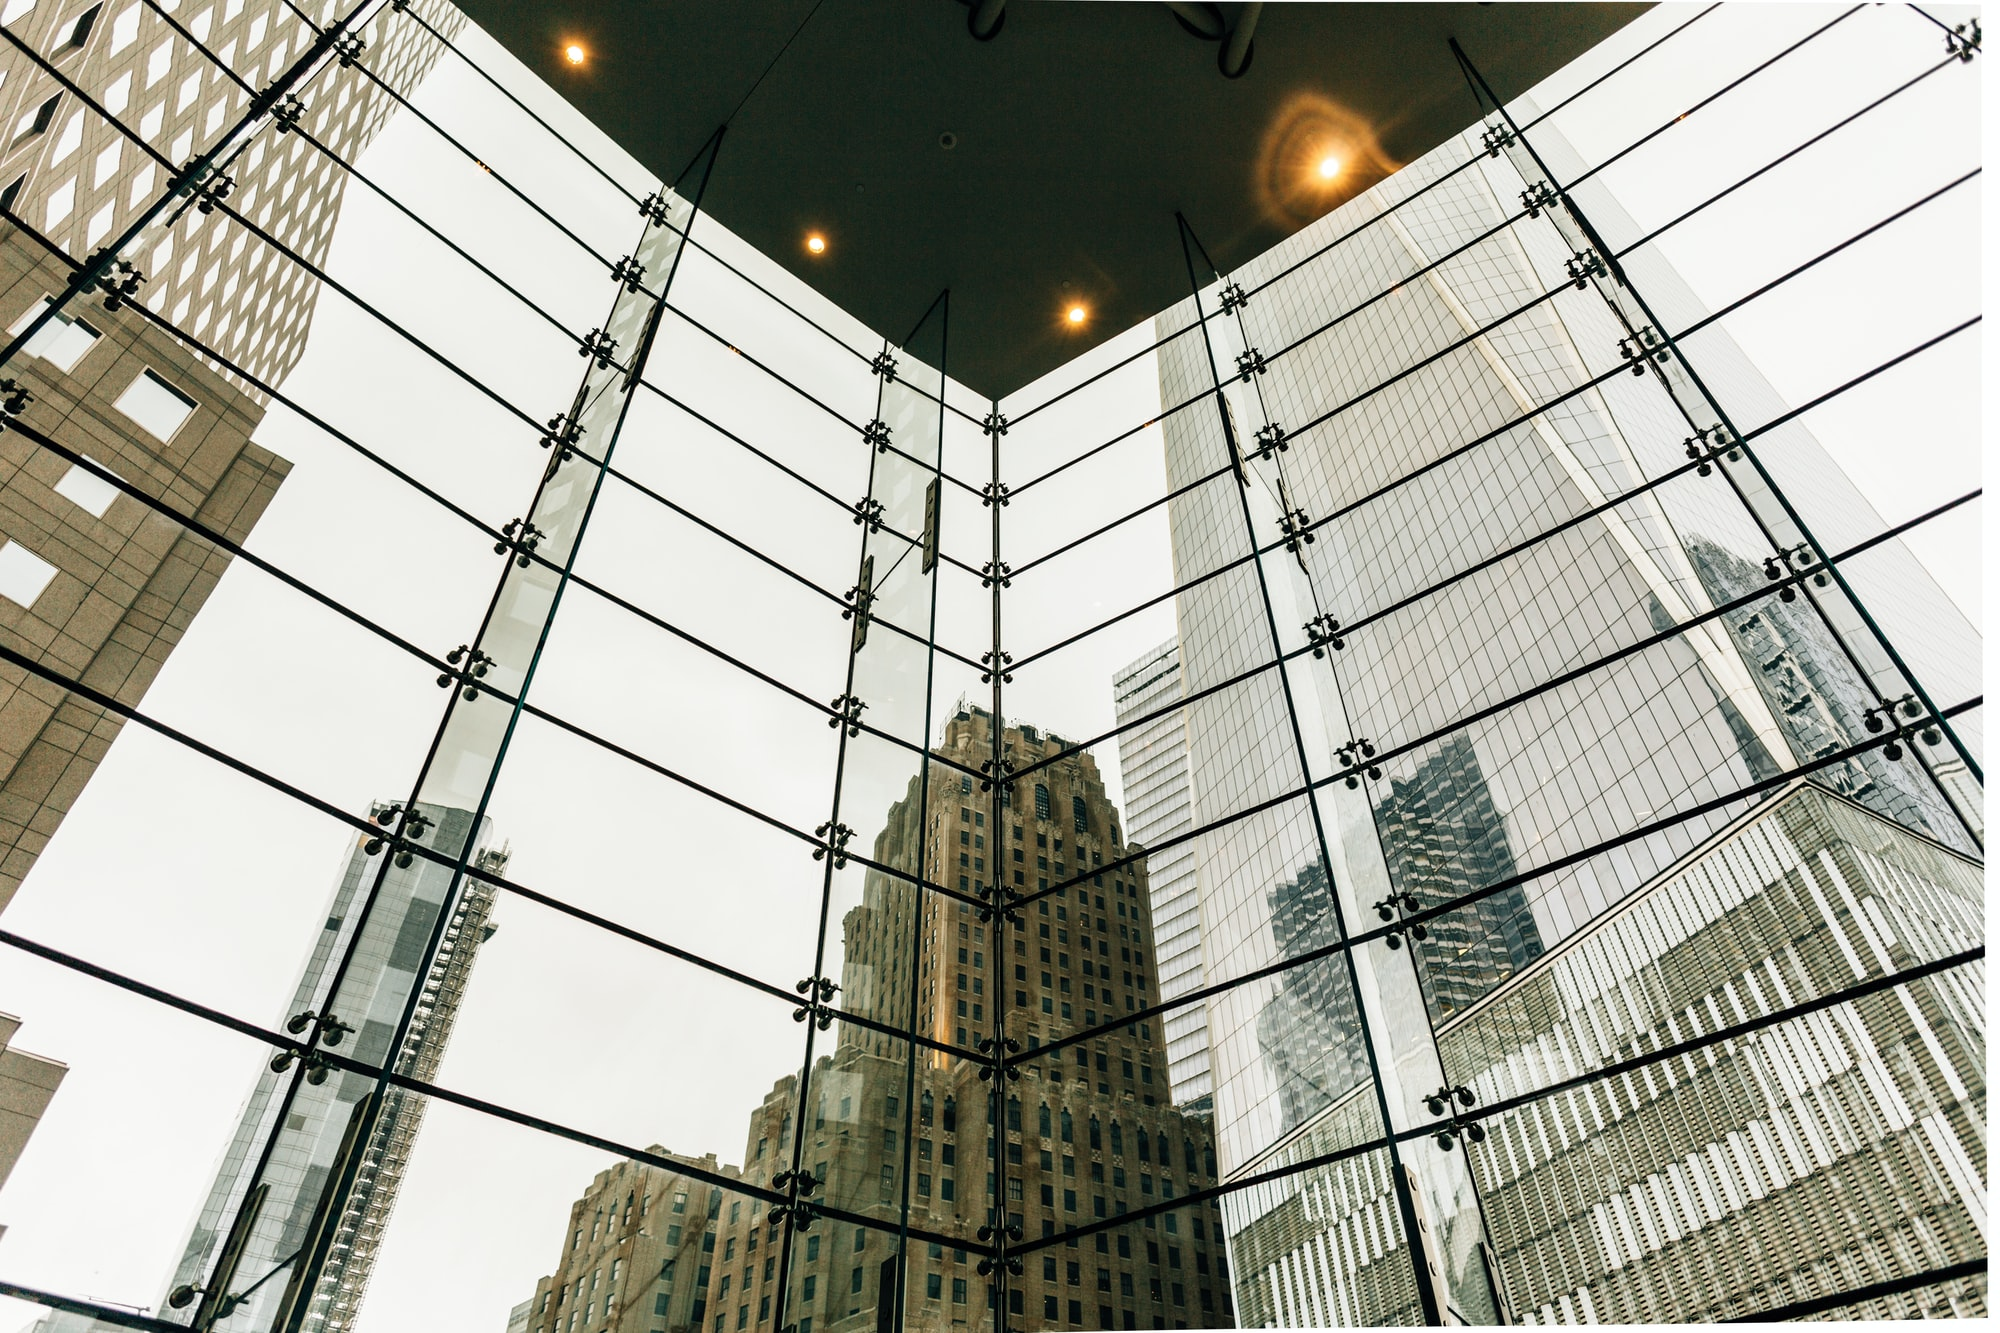 A view of One Trade Center in New York City.